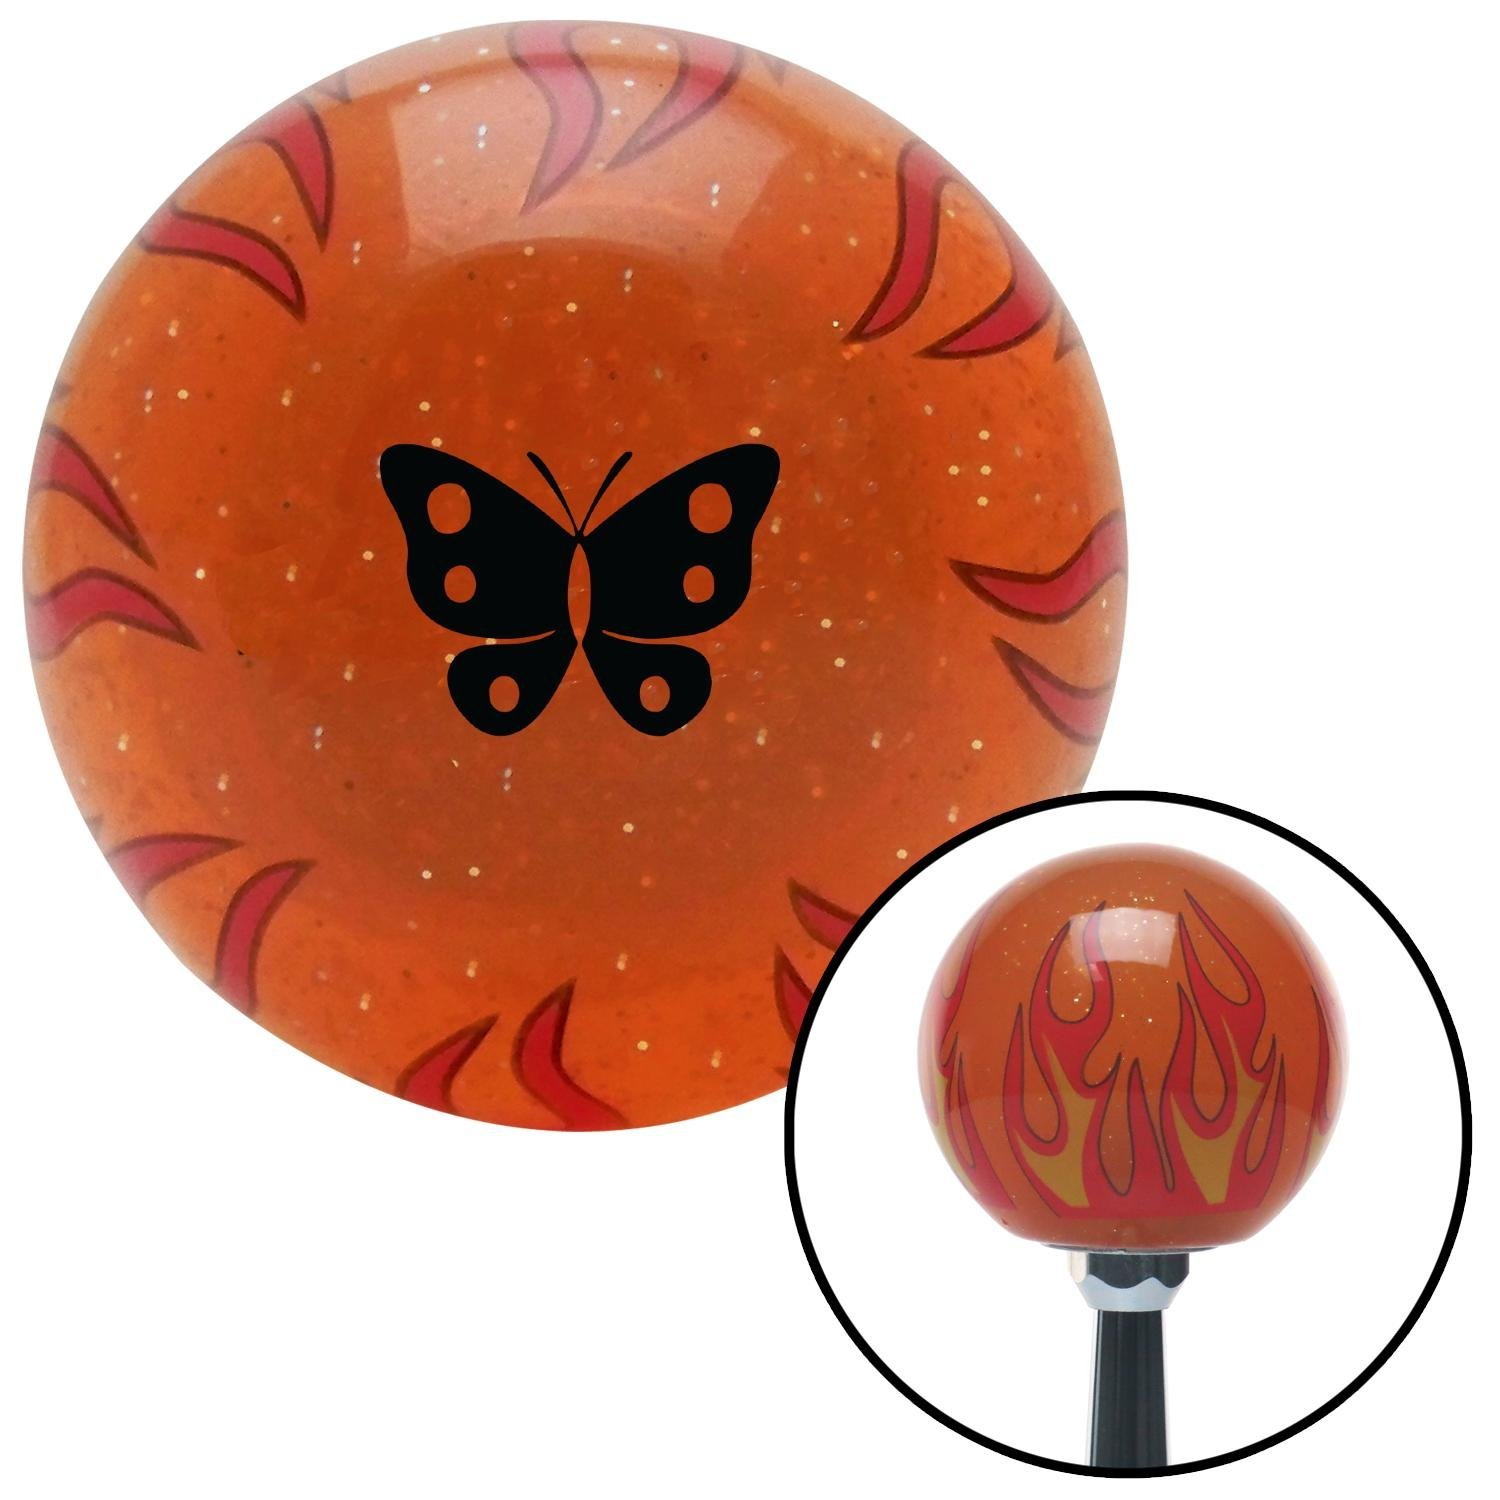 American Shifter 298713 Shift Knob Black Classic Butterfly Orange Flame Metal Flake with M16 x 1.5 Insert